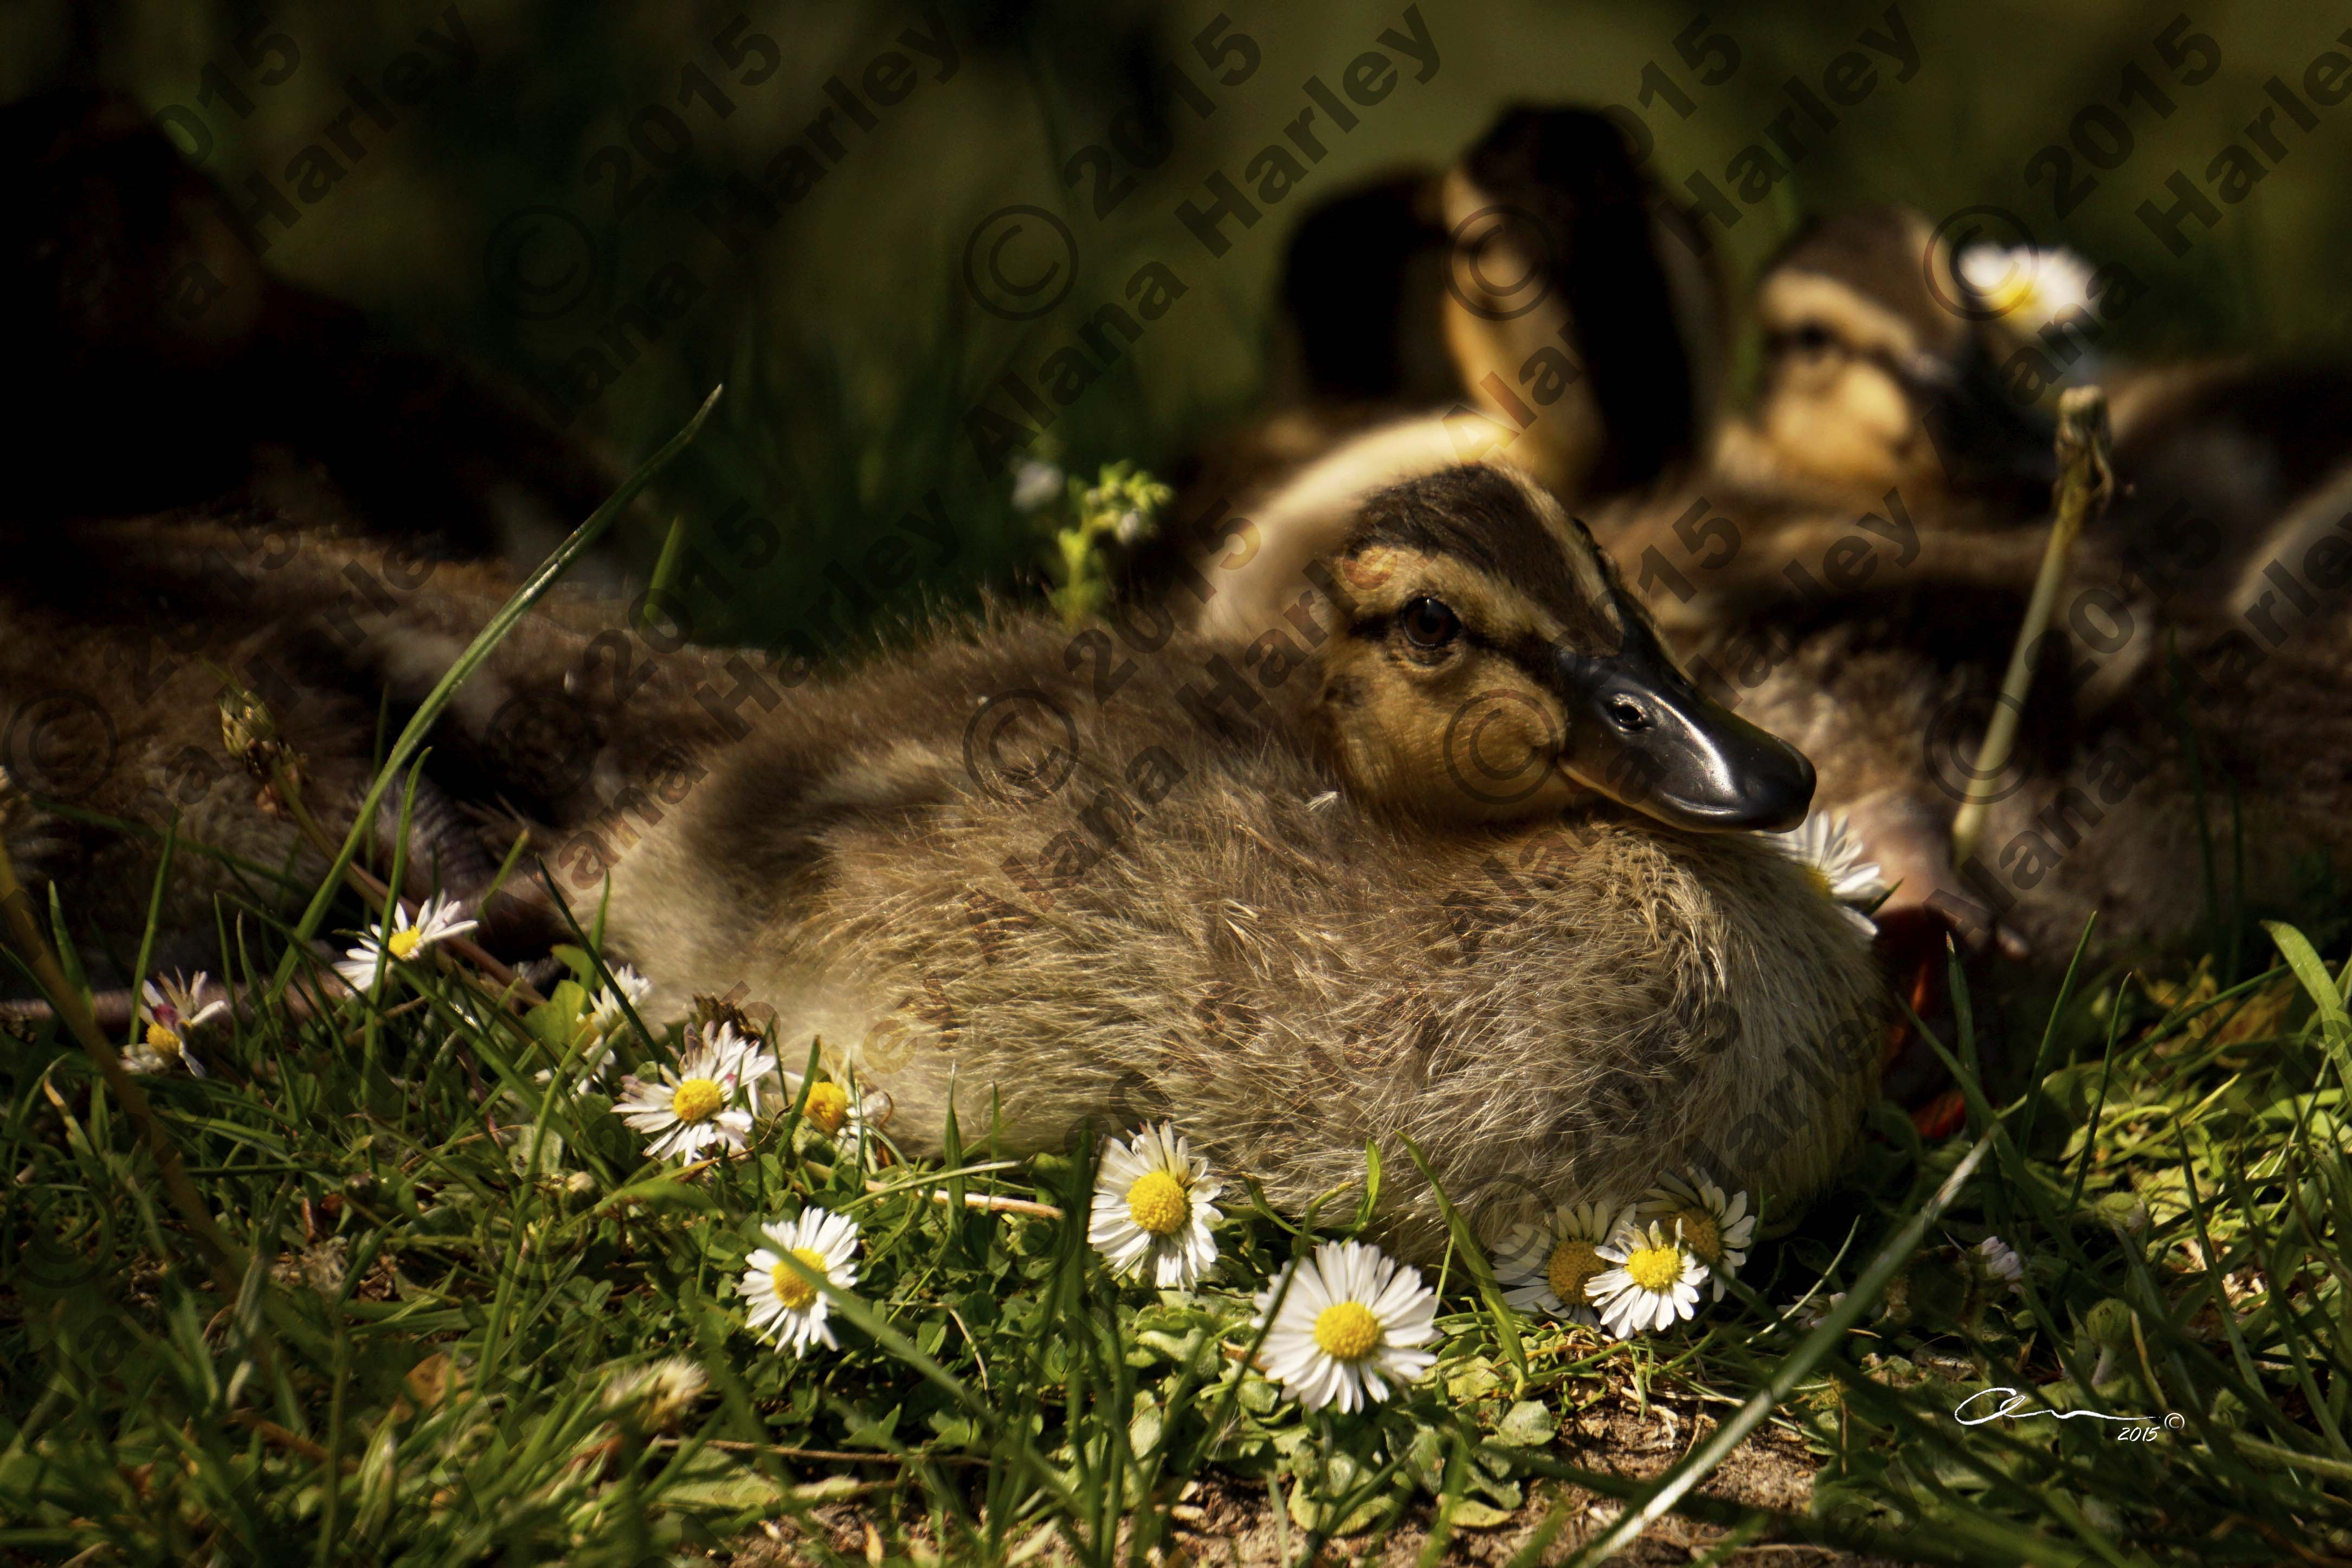 Dozing Duckling in the Daisys